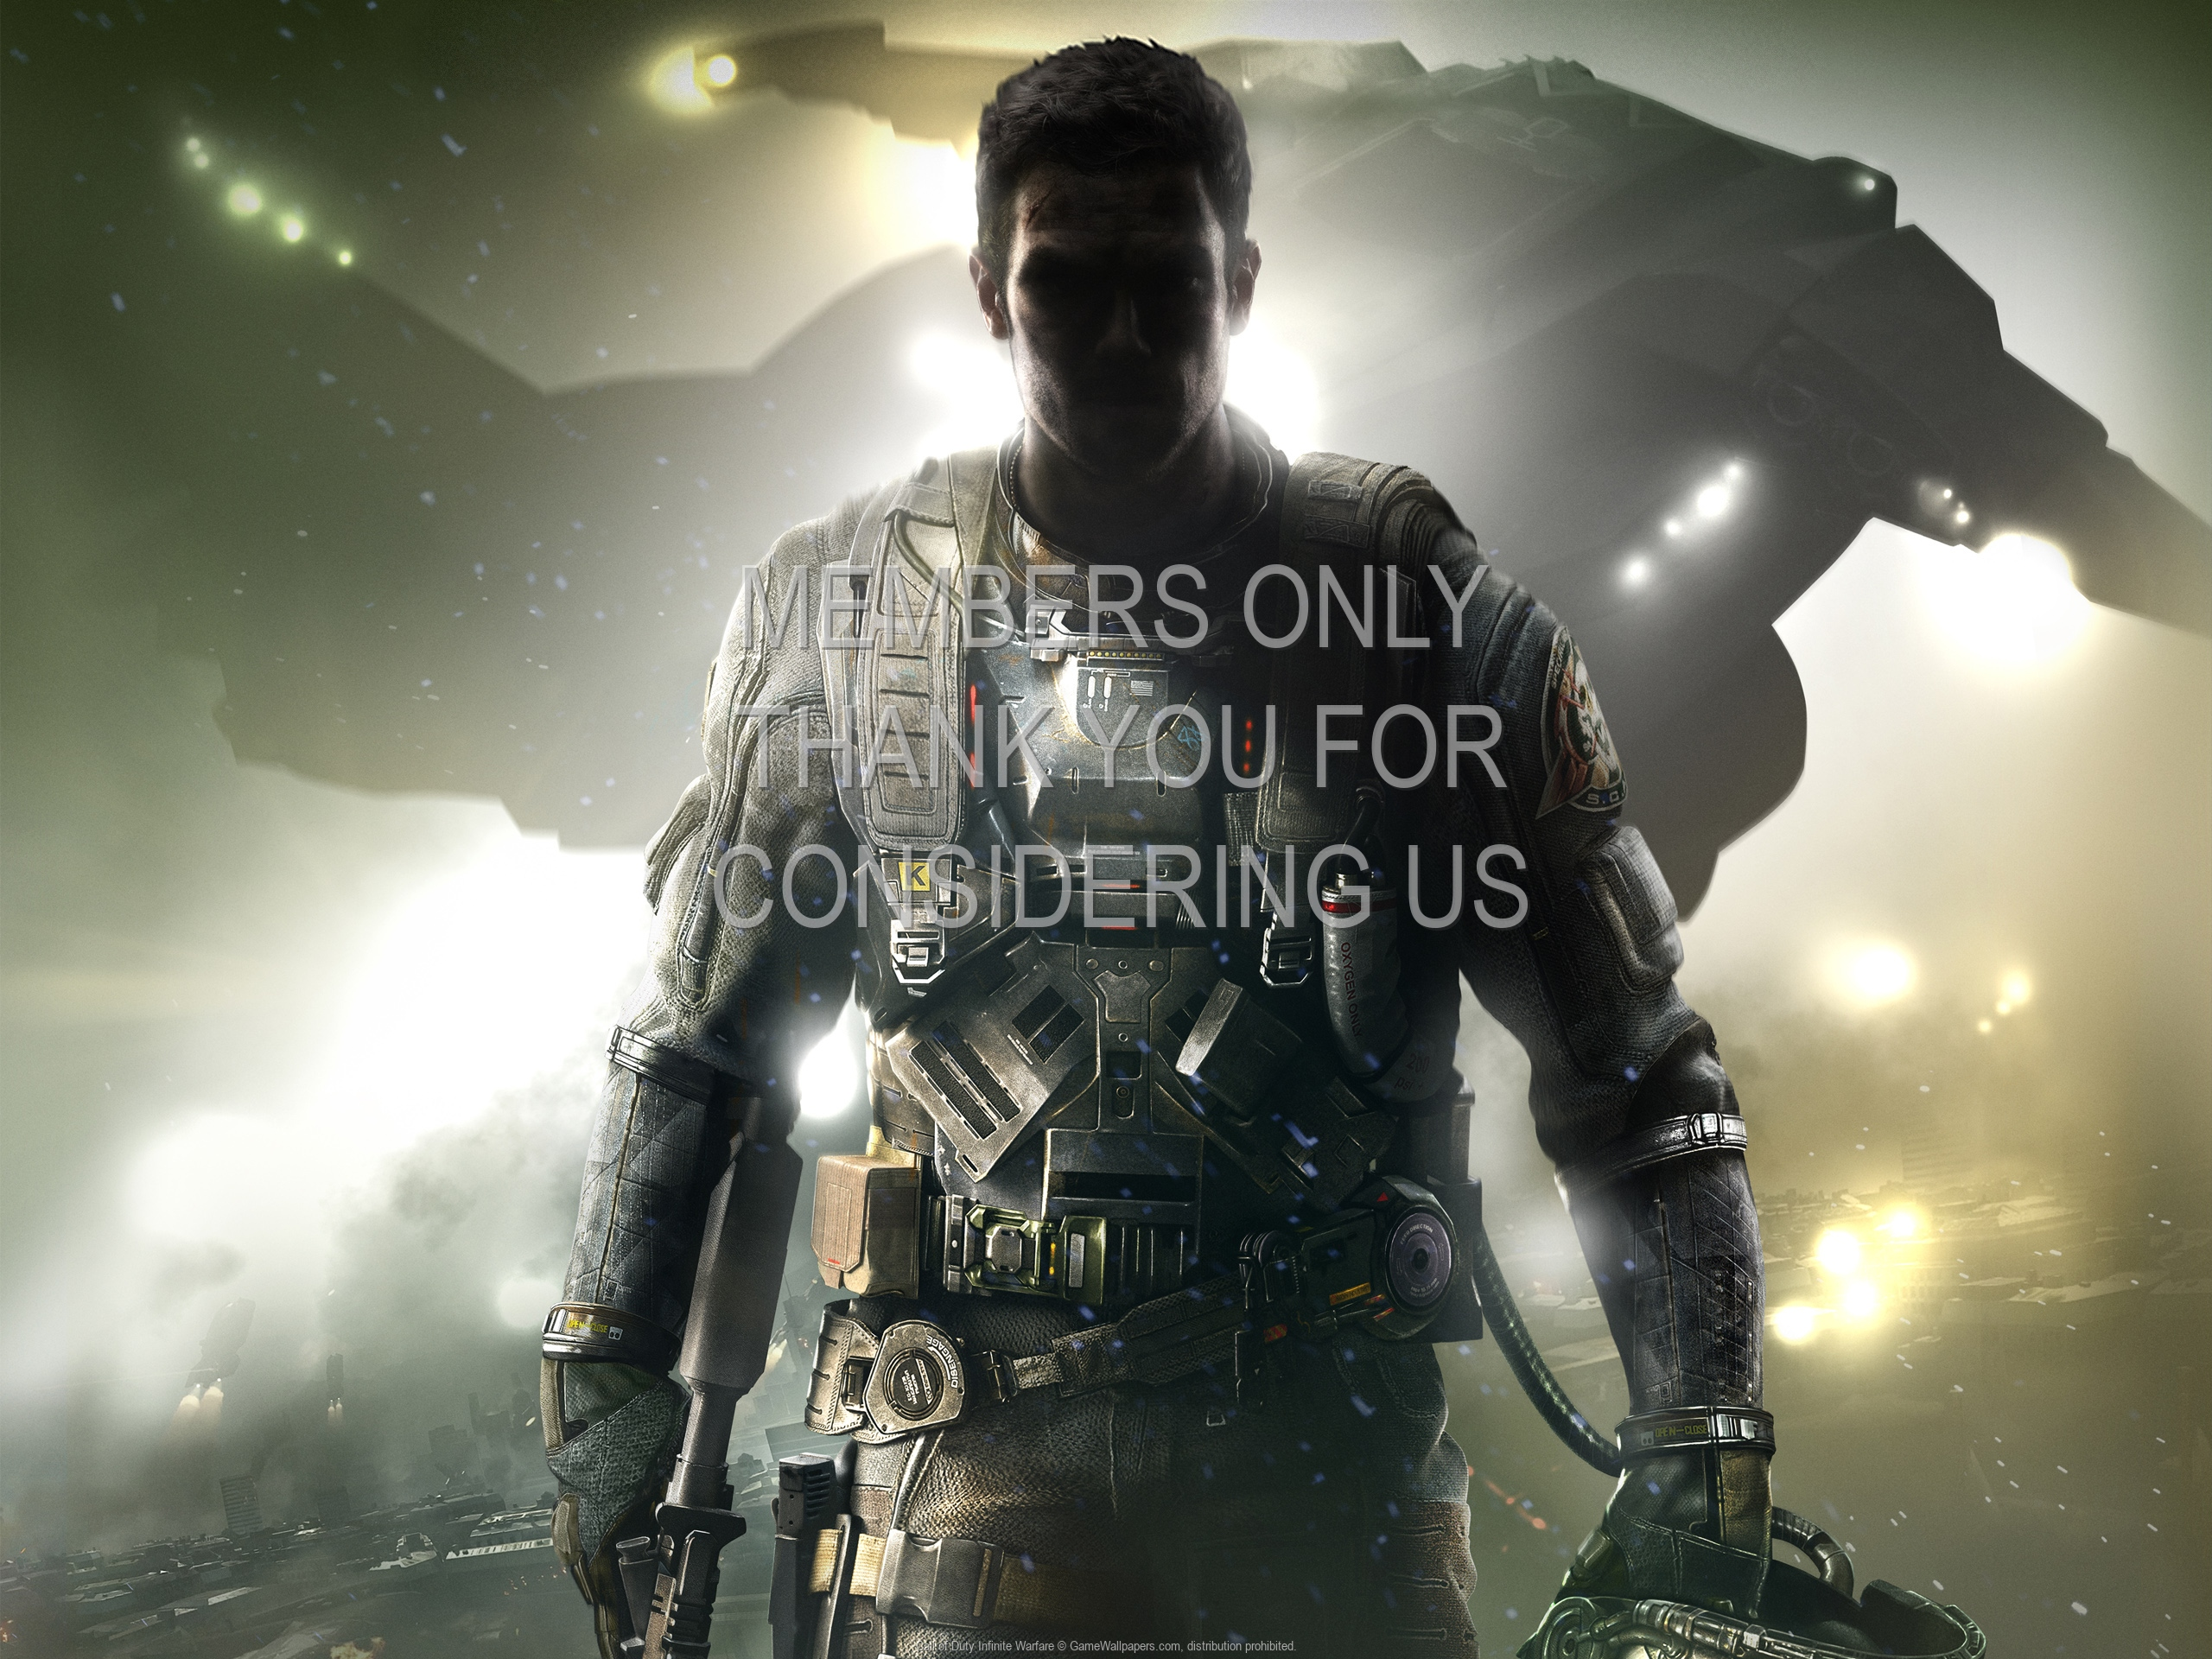 Call of Duty: Infinite Warfare 1920x1080 Mobile wallpaper or background 01